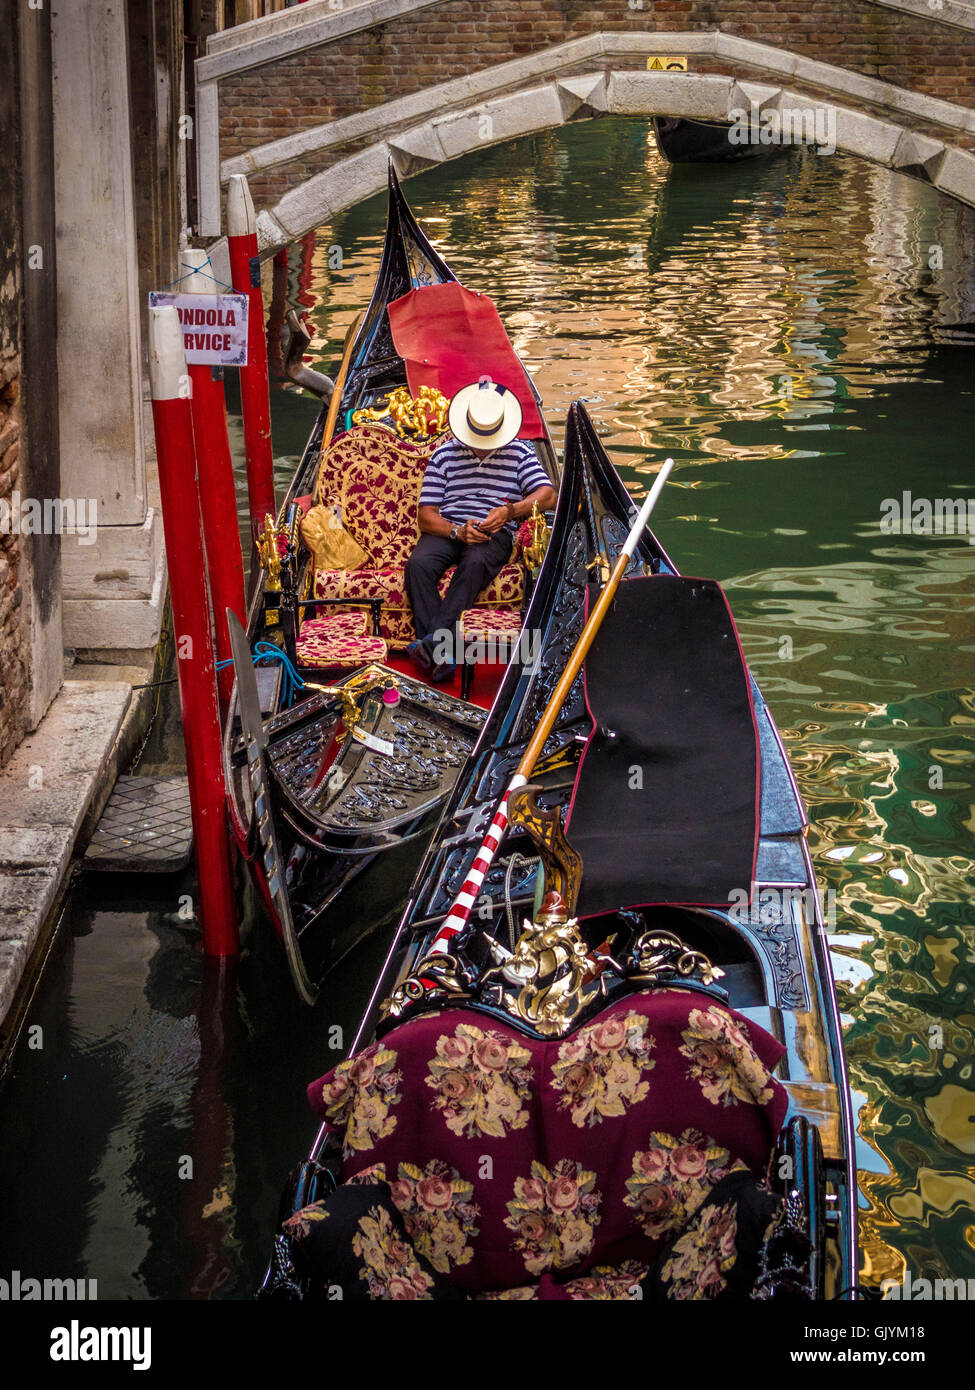 8f83b2d0957 Gondolier wearing traditional striped top and straw boater hat sitting in  his boat sending a text